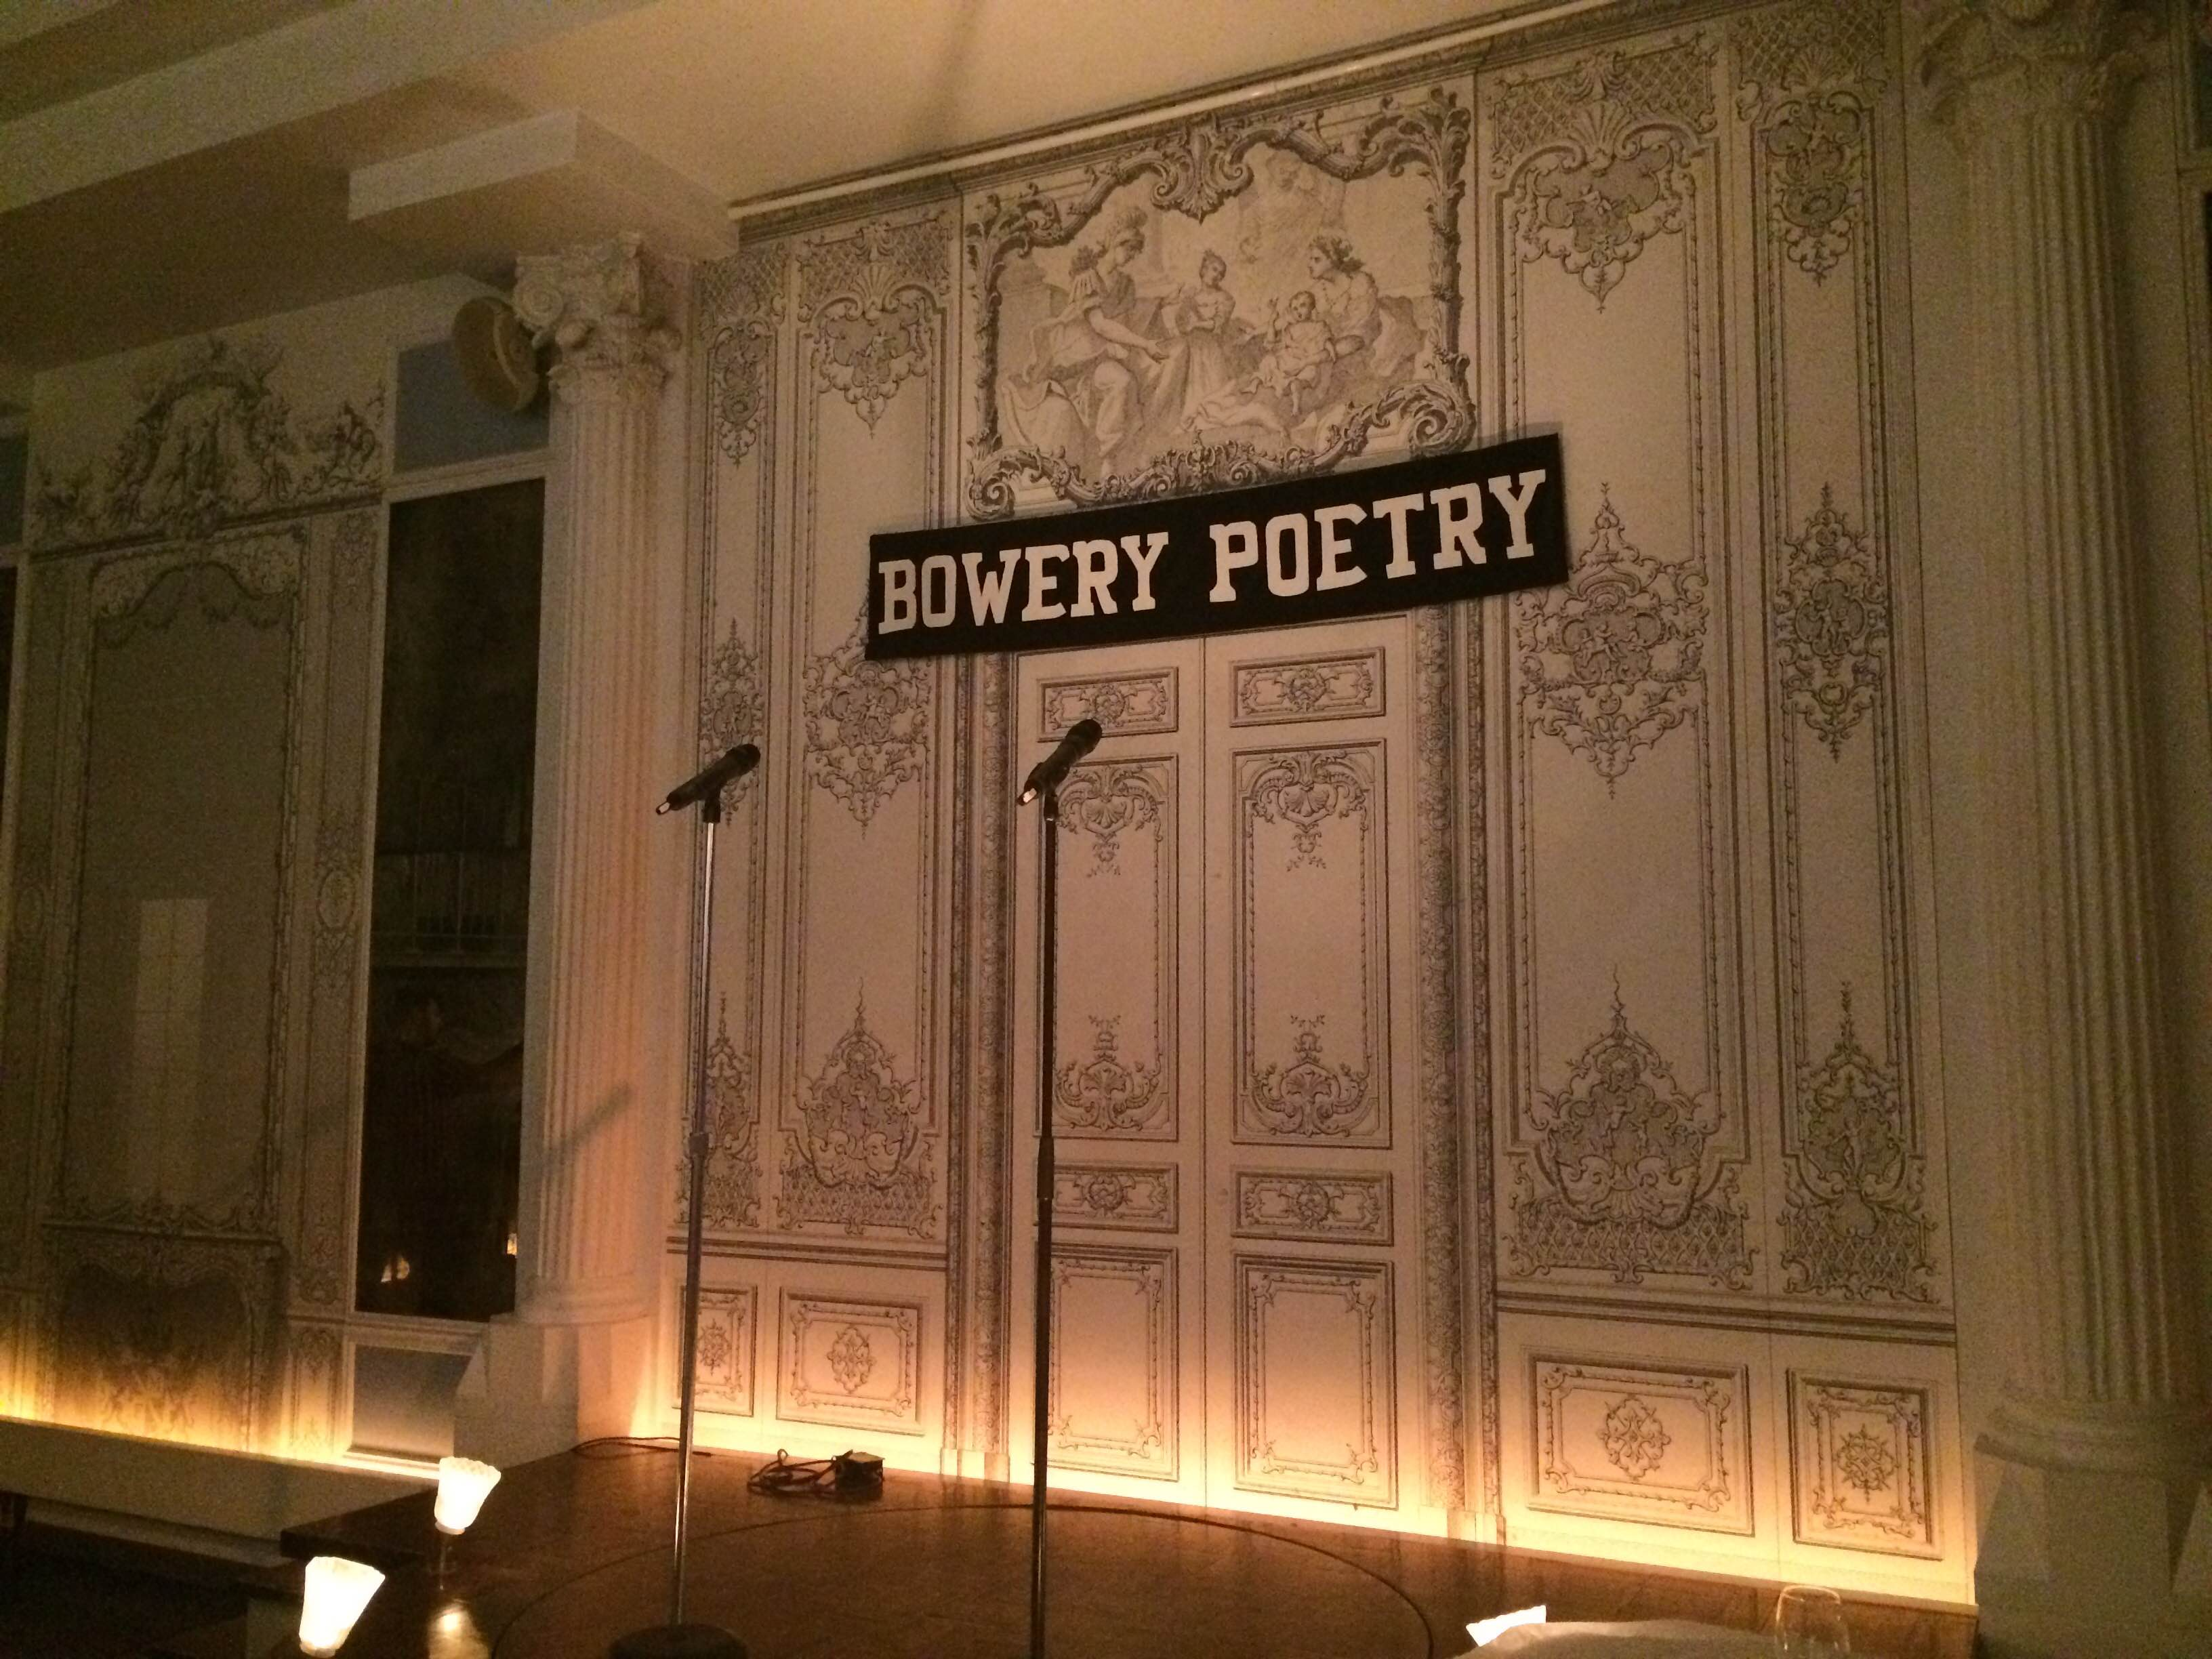 Art Space Profile: The Bowery Poetry Club – Lily Haight